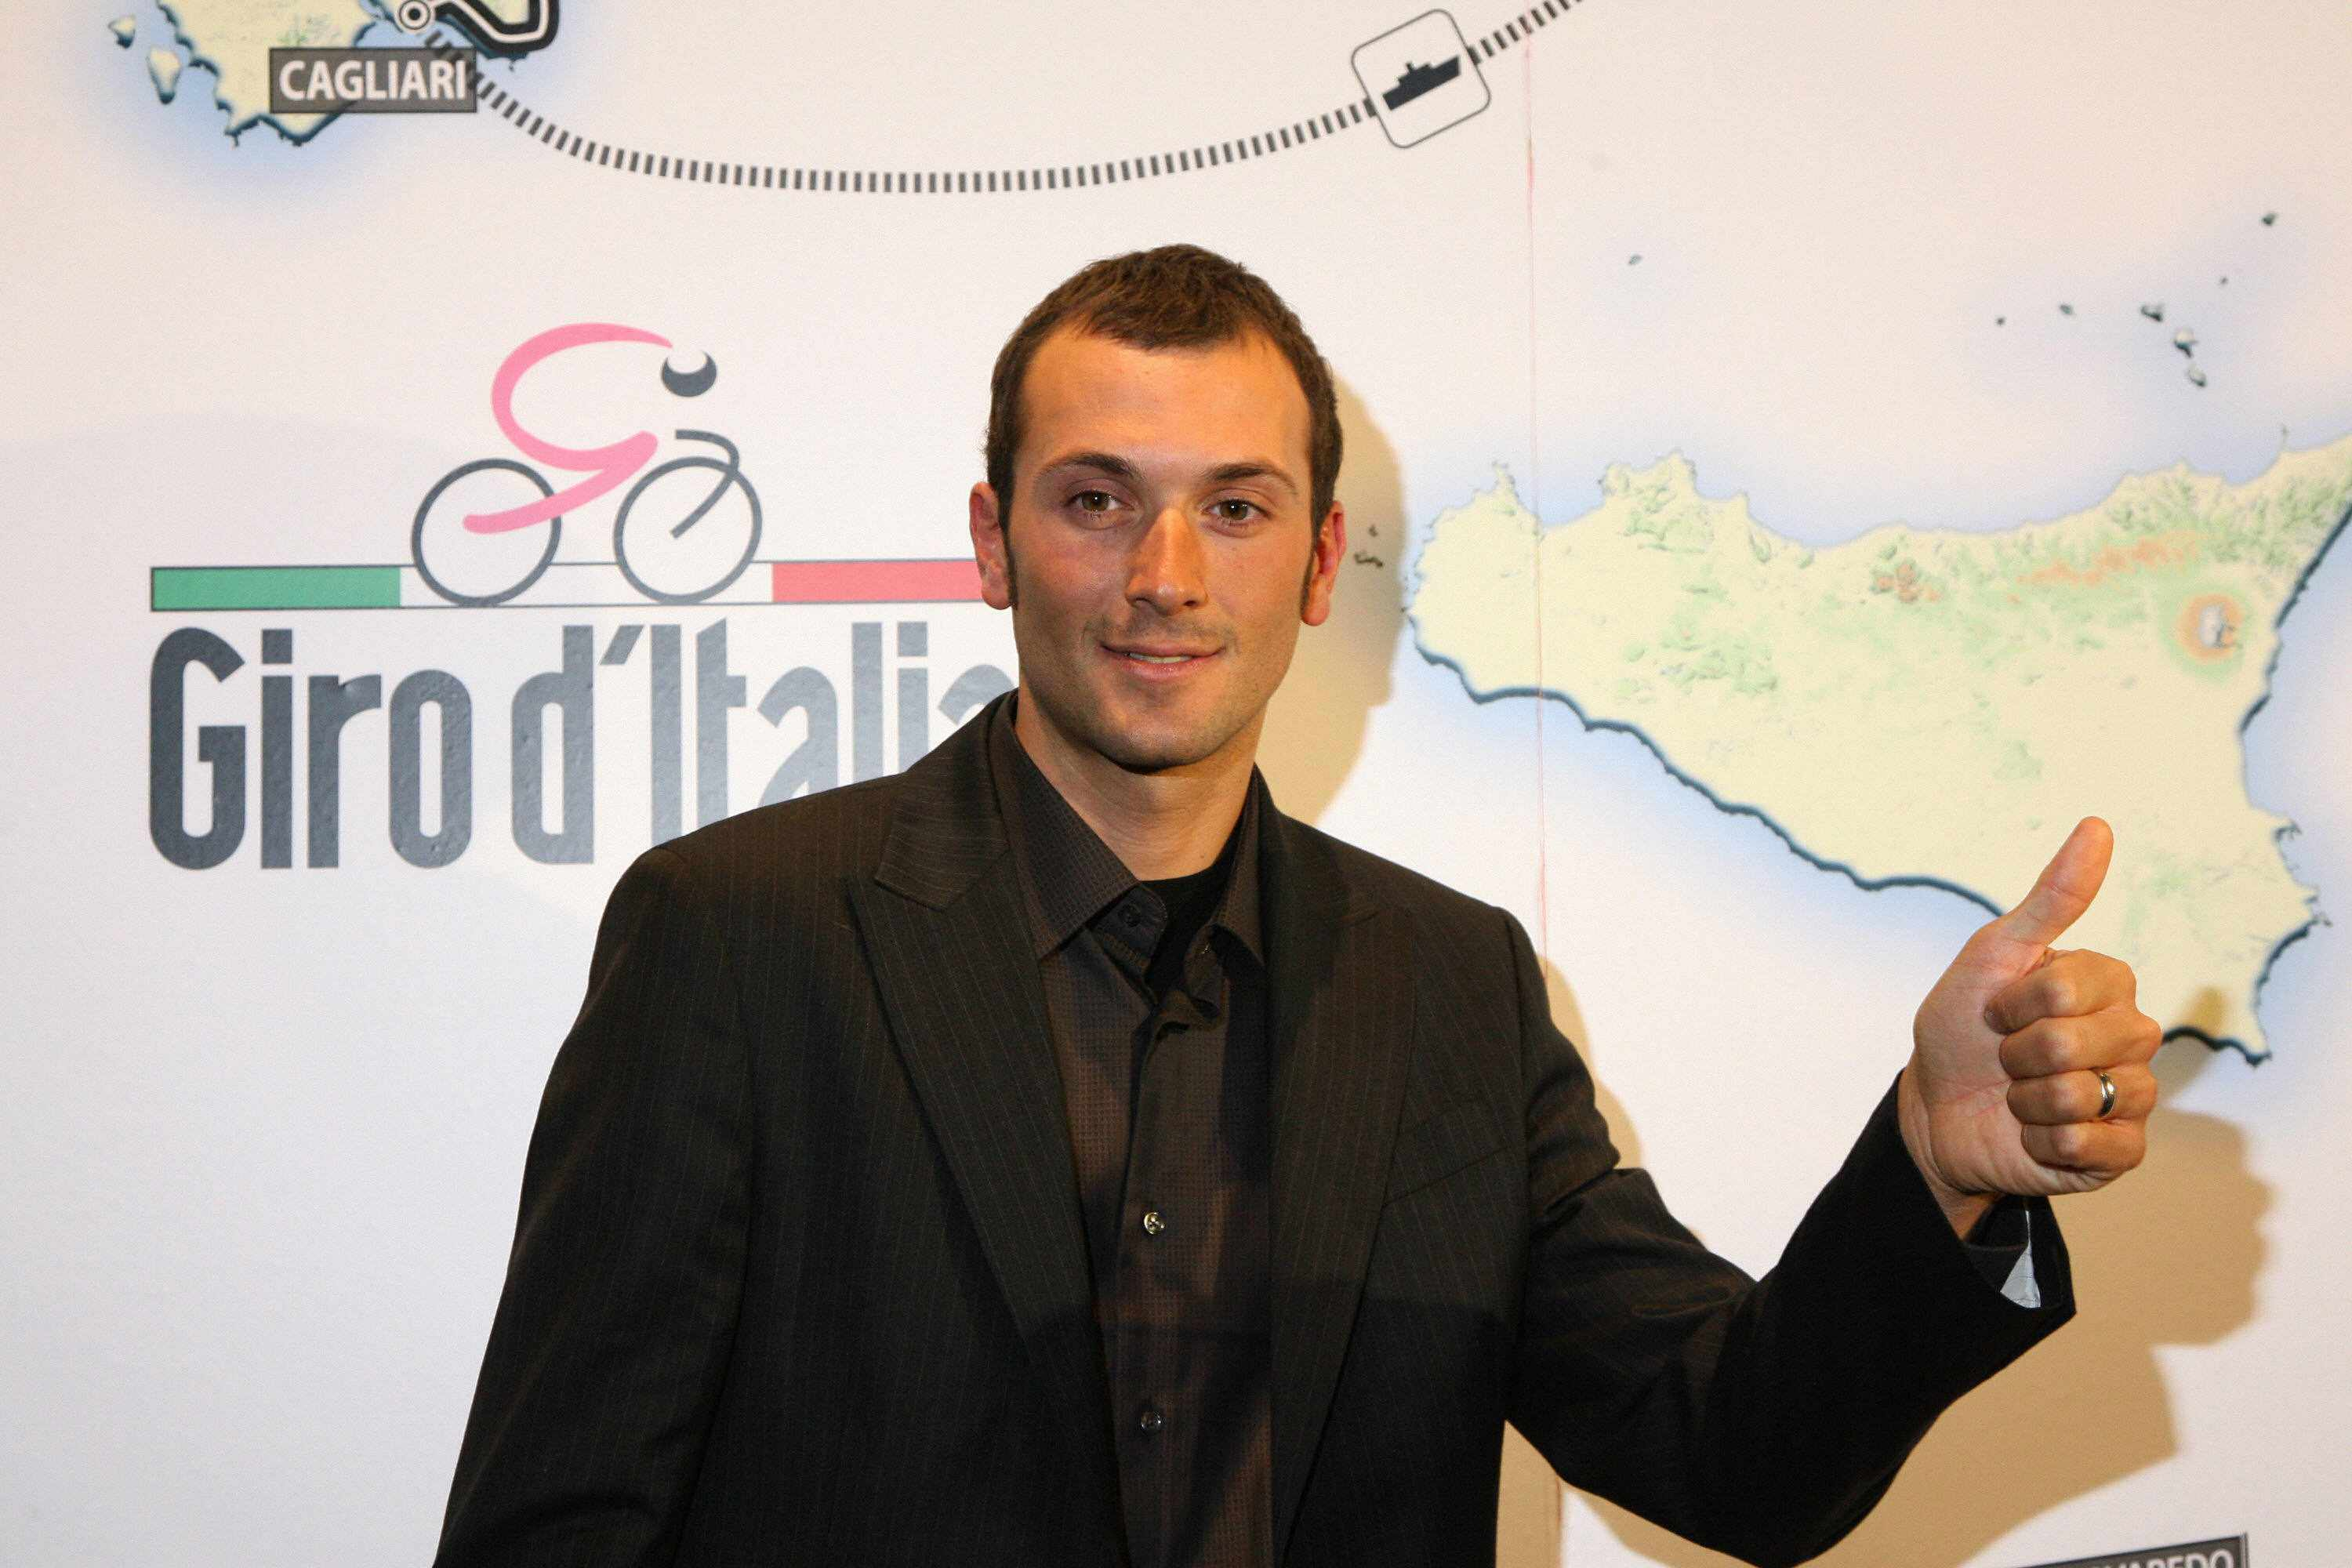 Ivan Basso is eyeing a second Giro victory, this time against former Tour rival Lance Armstrong come 2009.